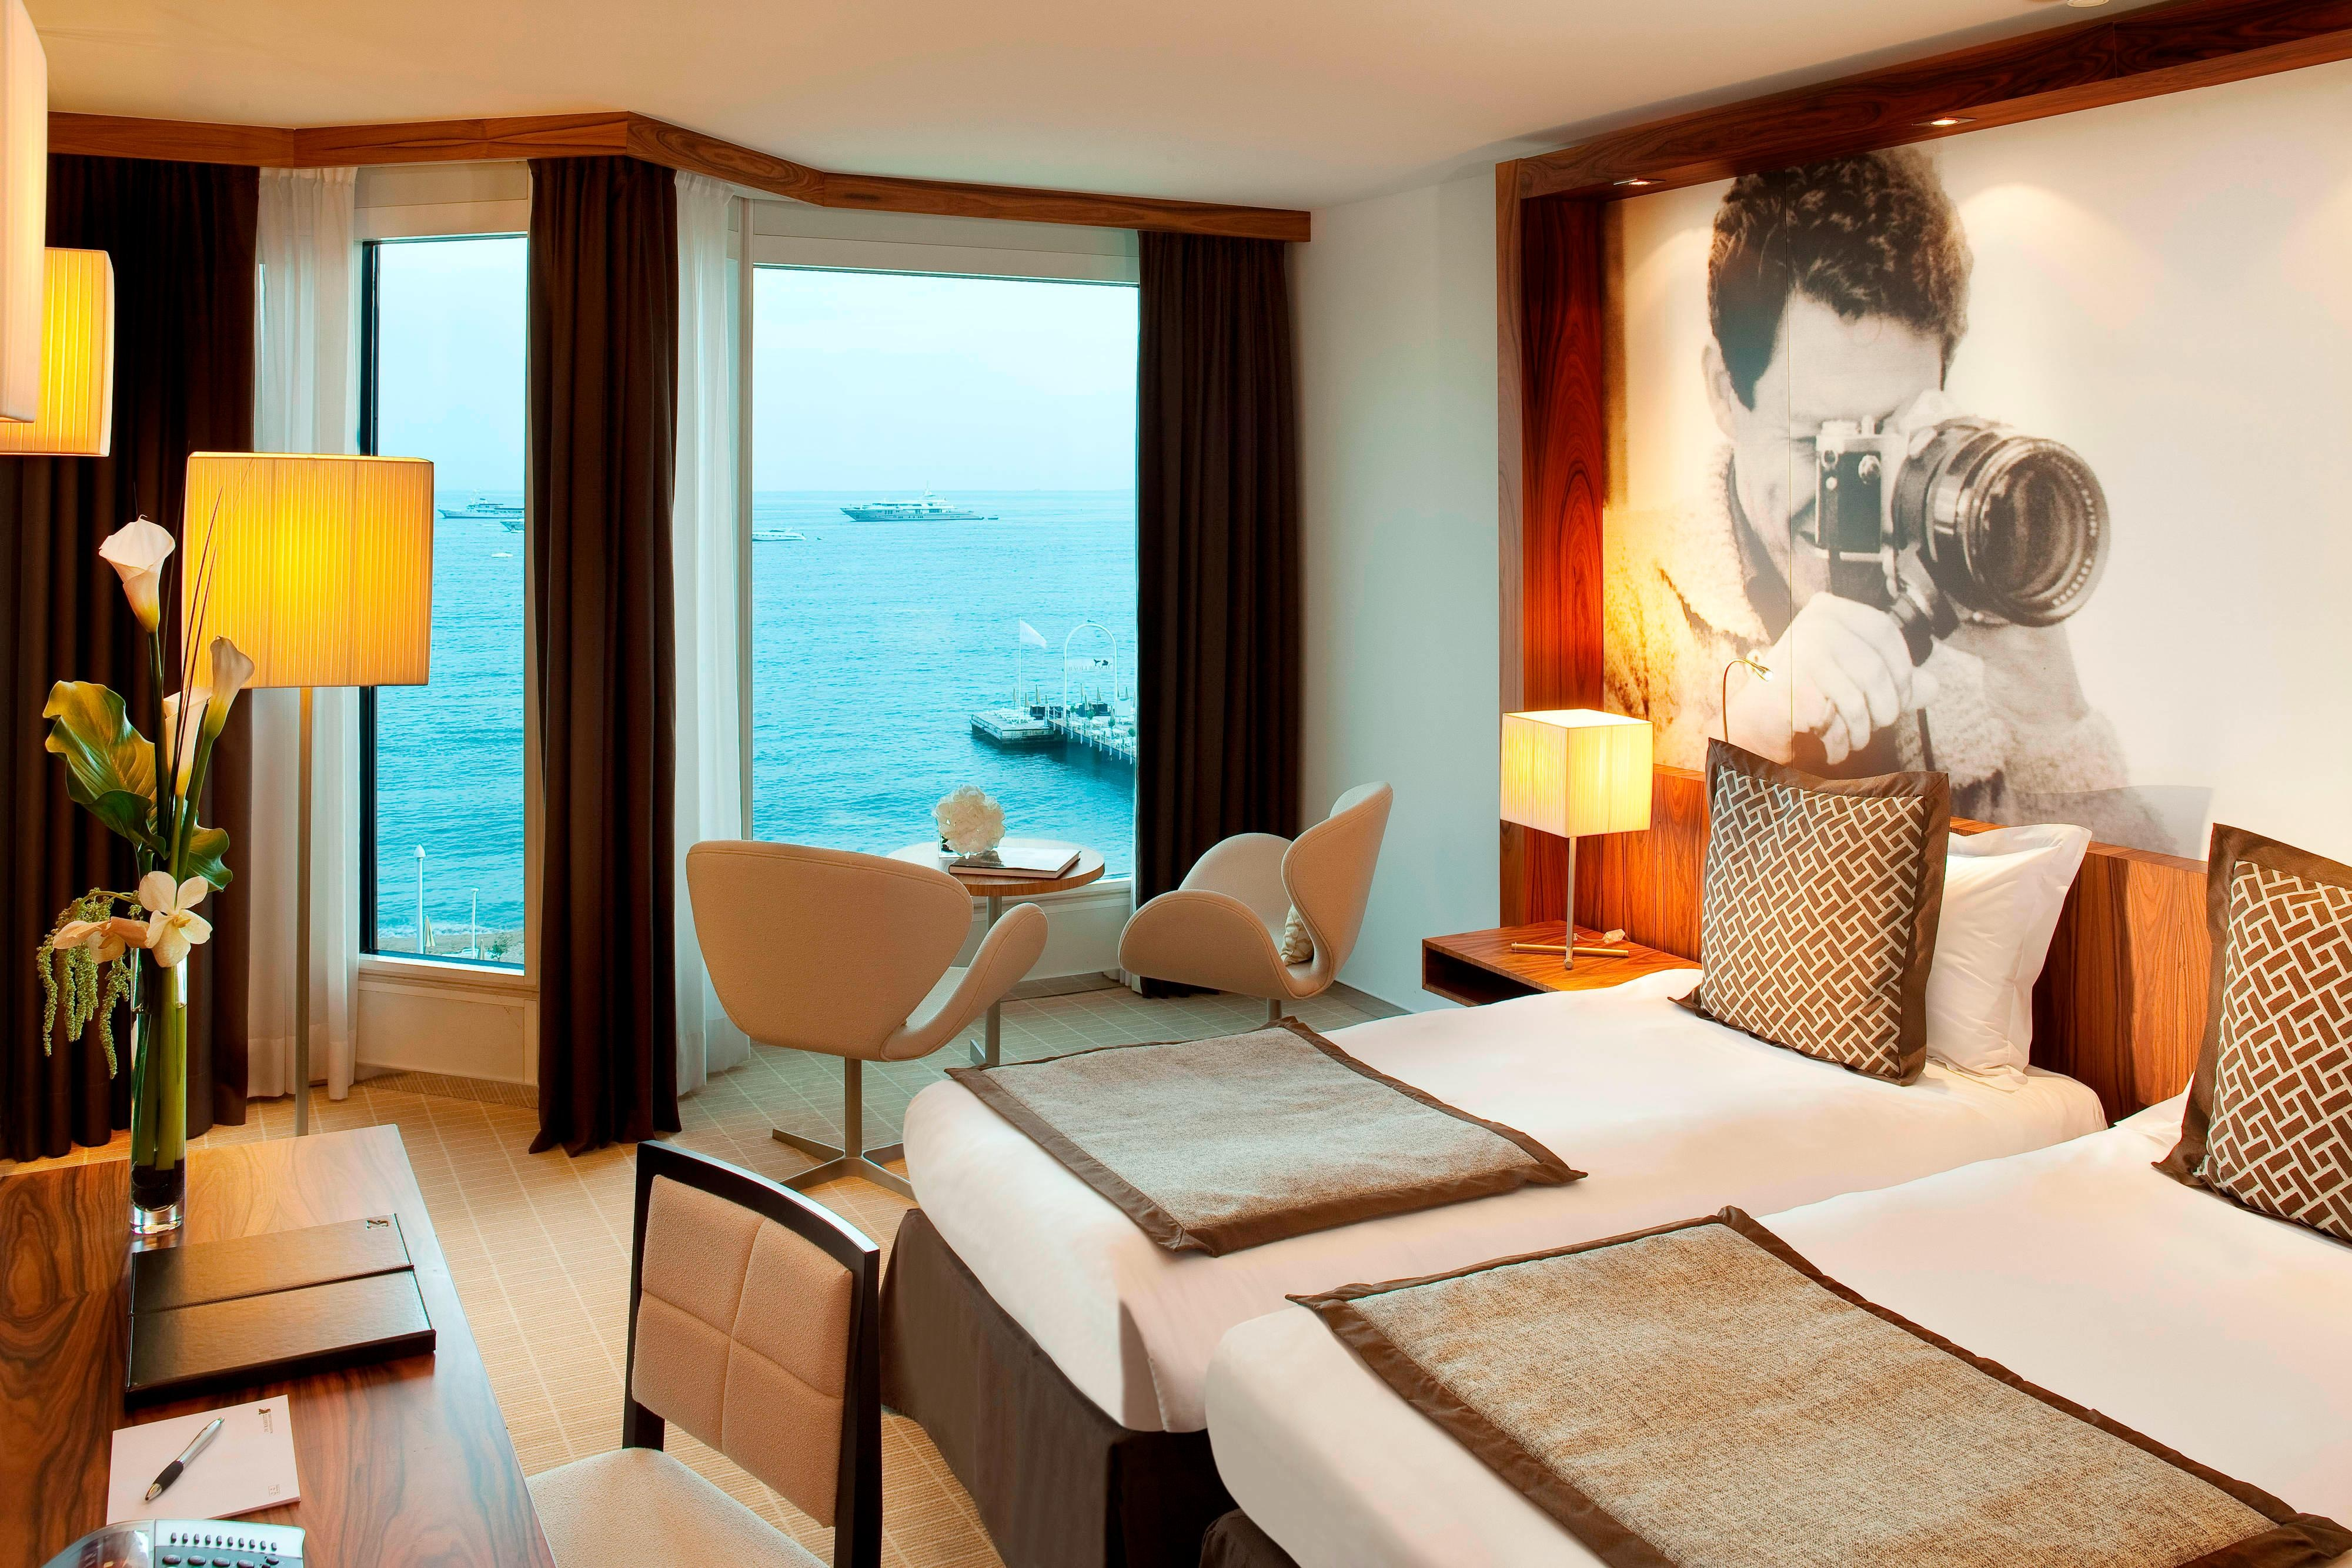 5 star Cannes hotel rooms